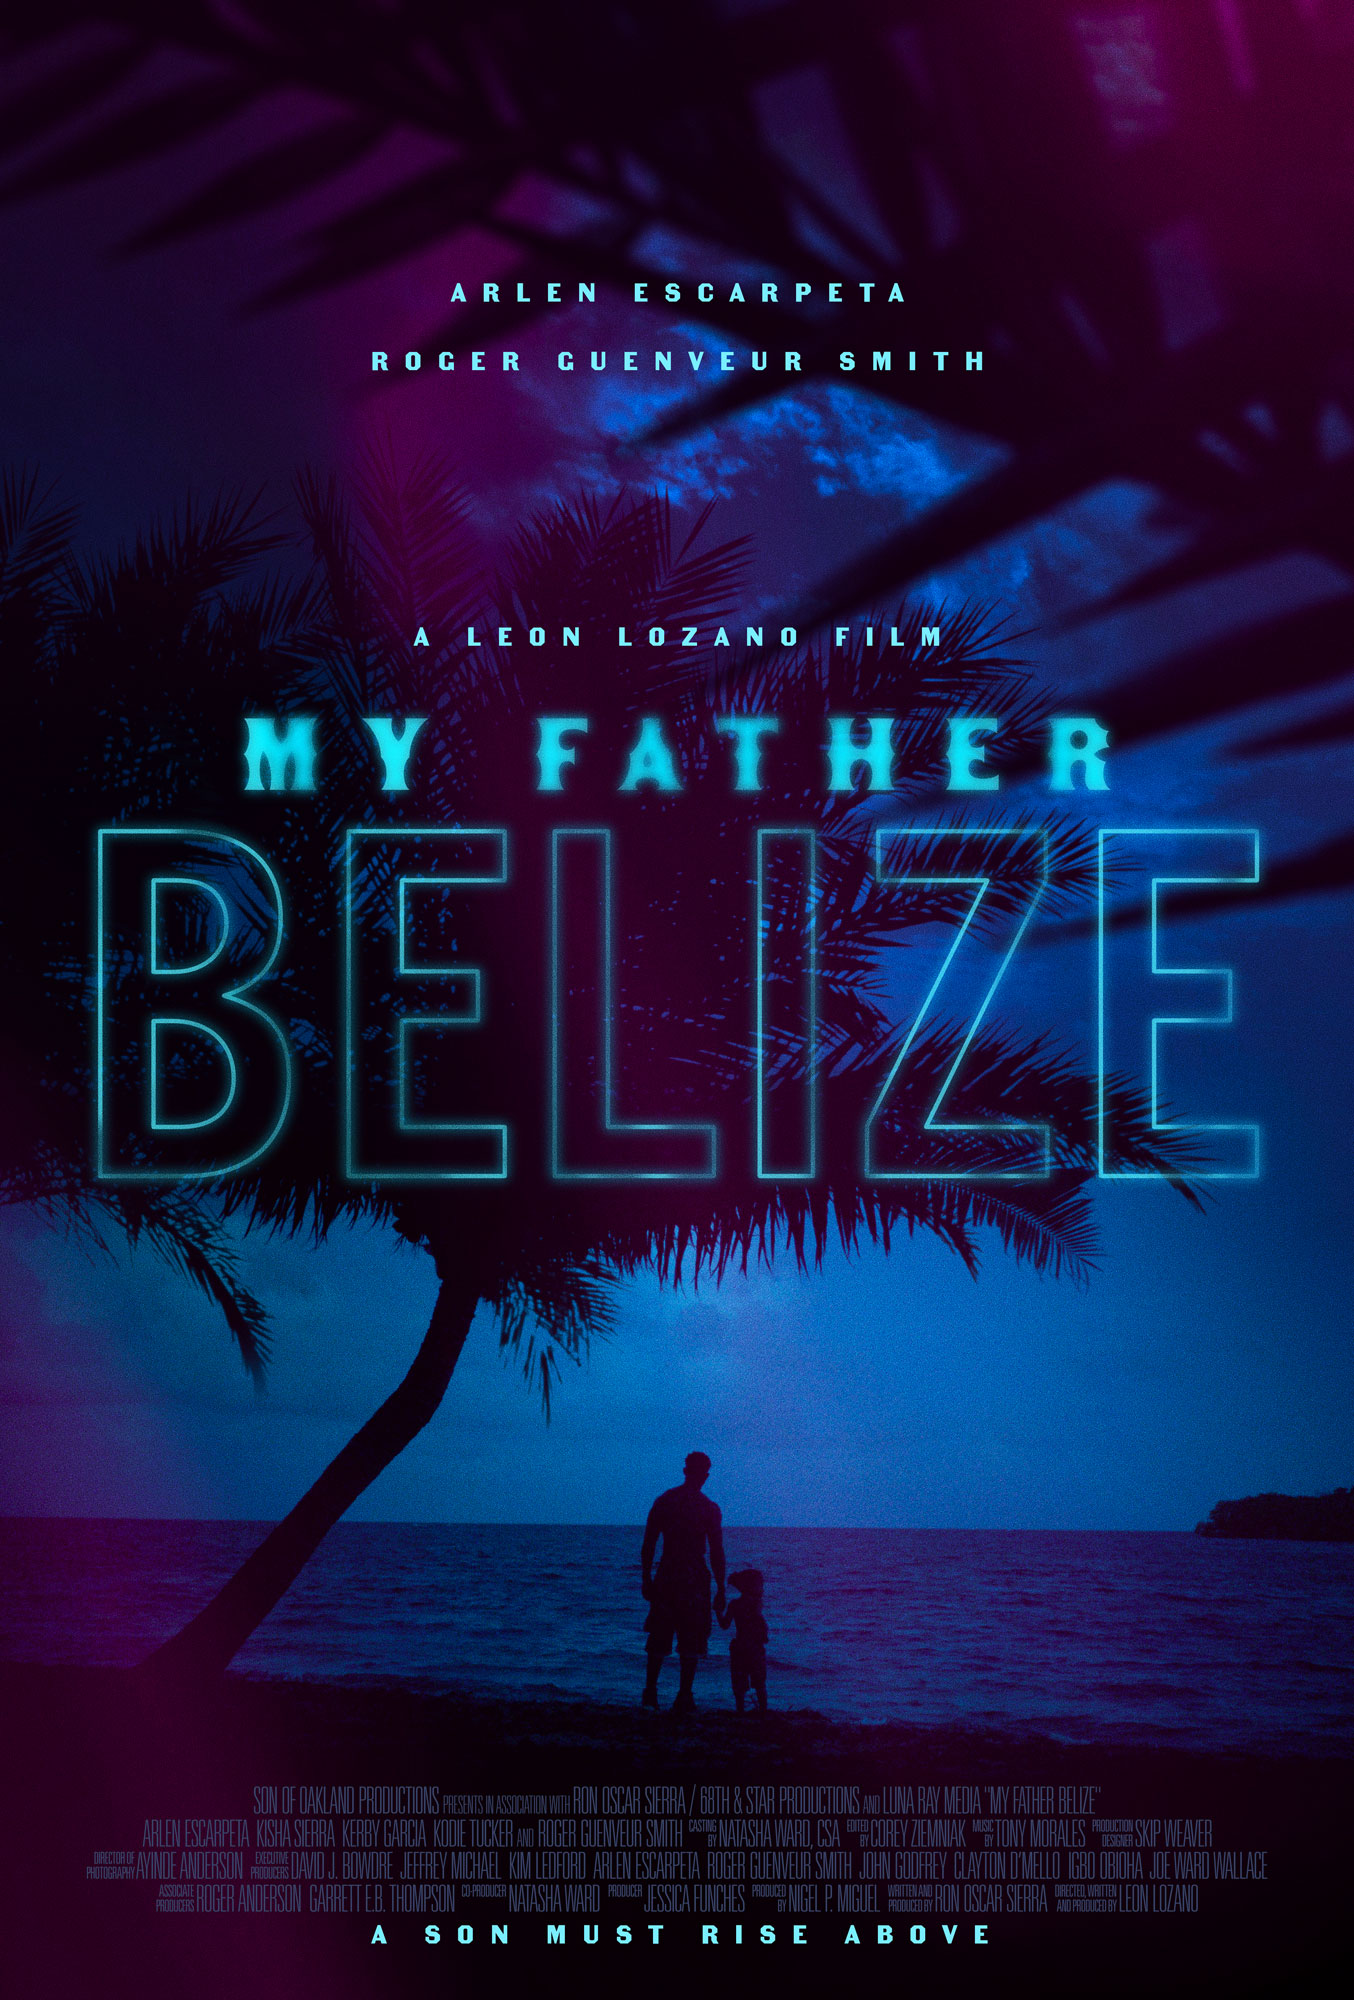 My Father Belize Movie Poster